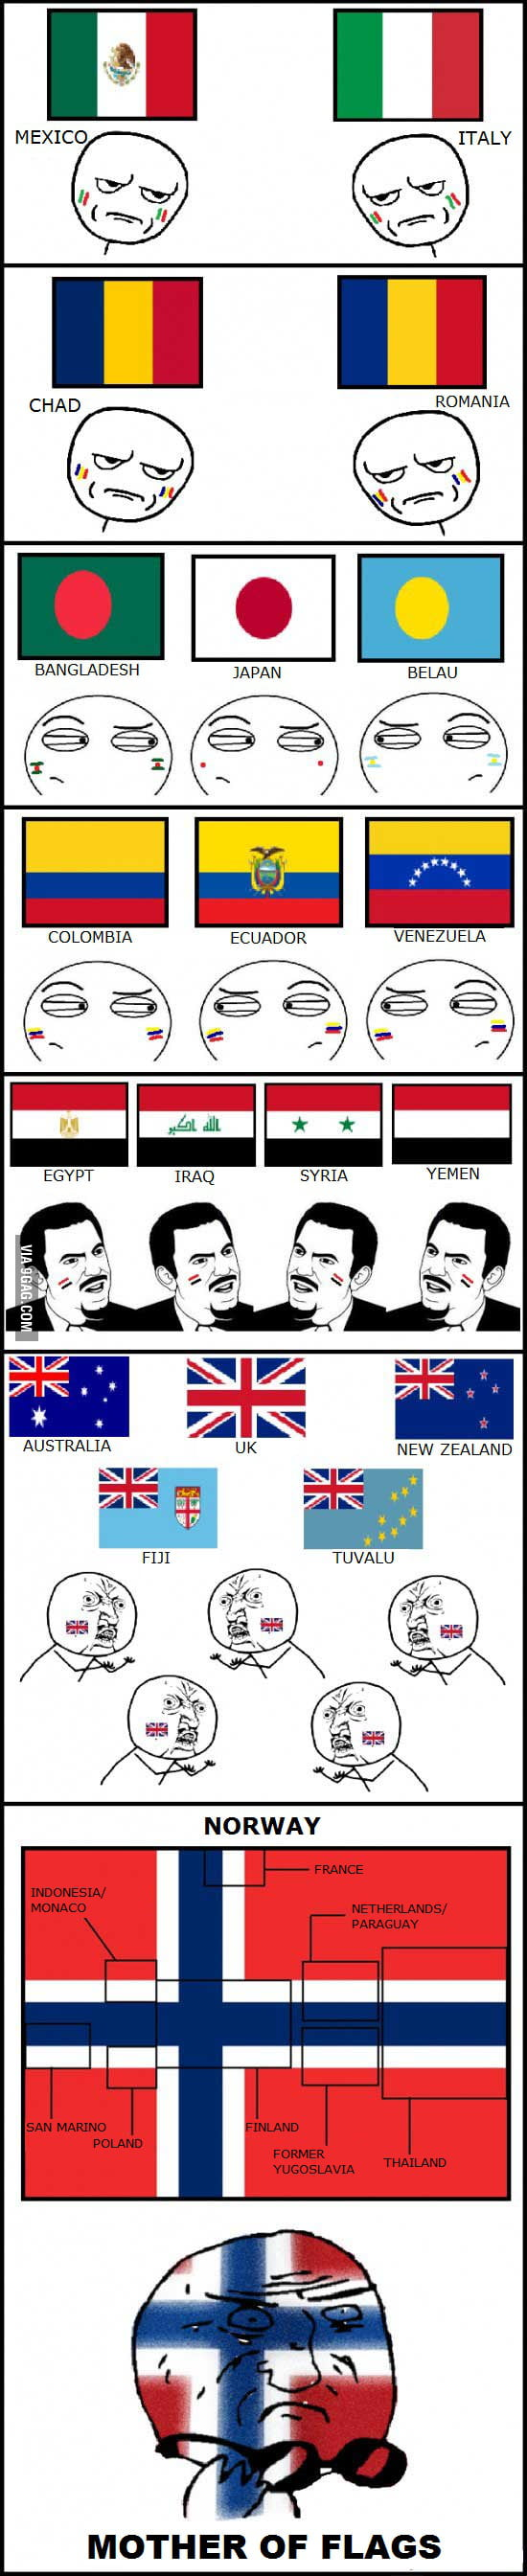 Some flags around the world... oh wait!